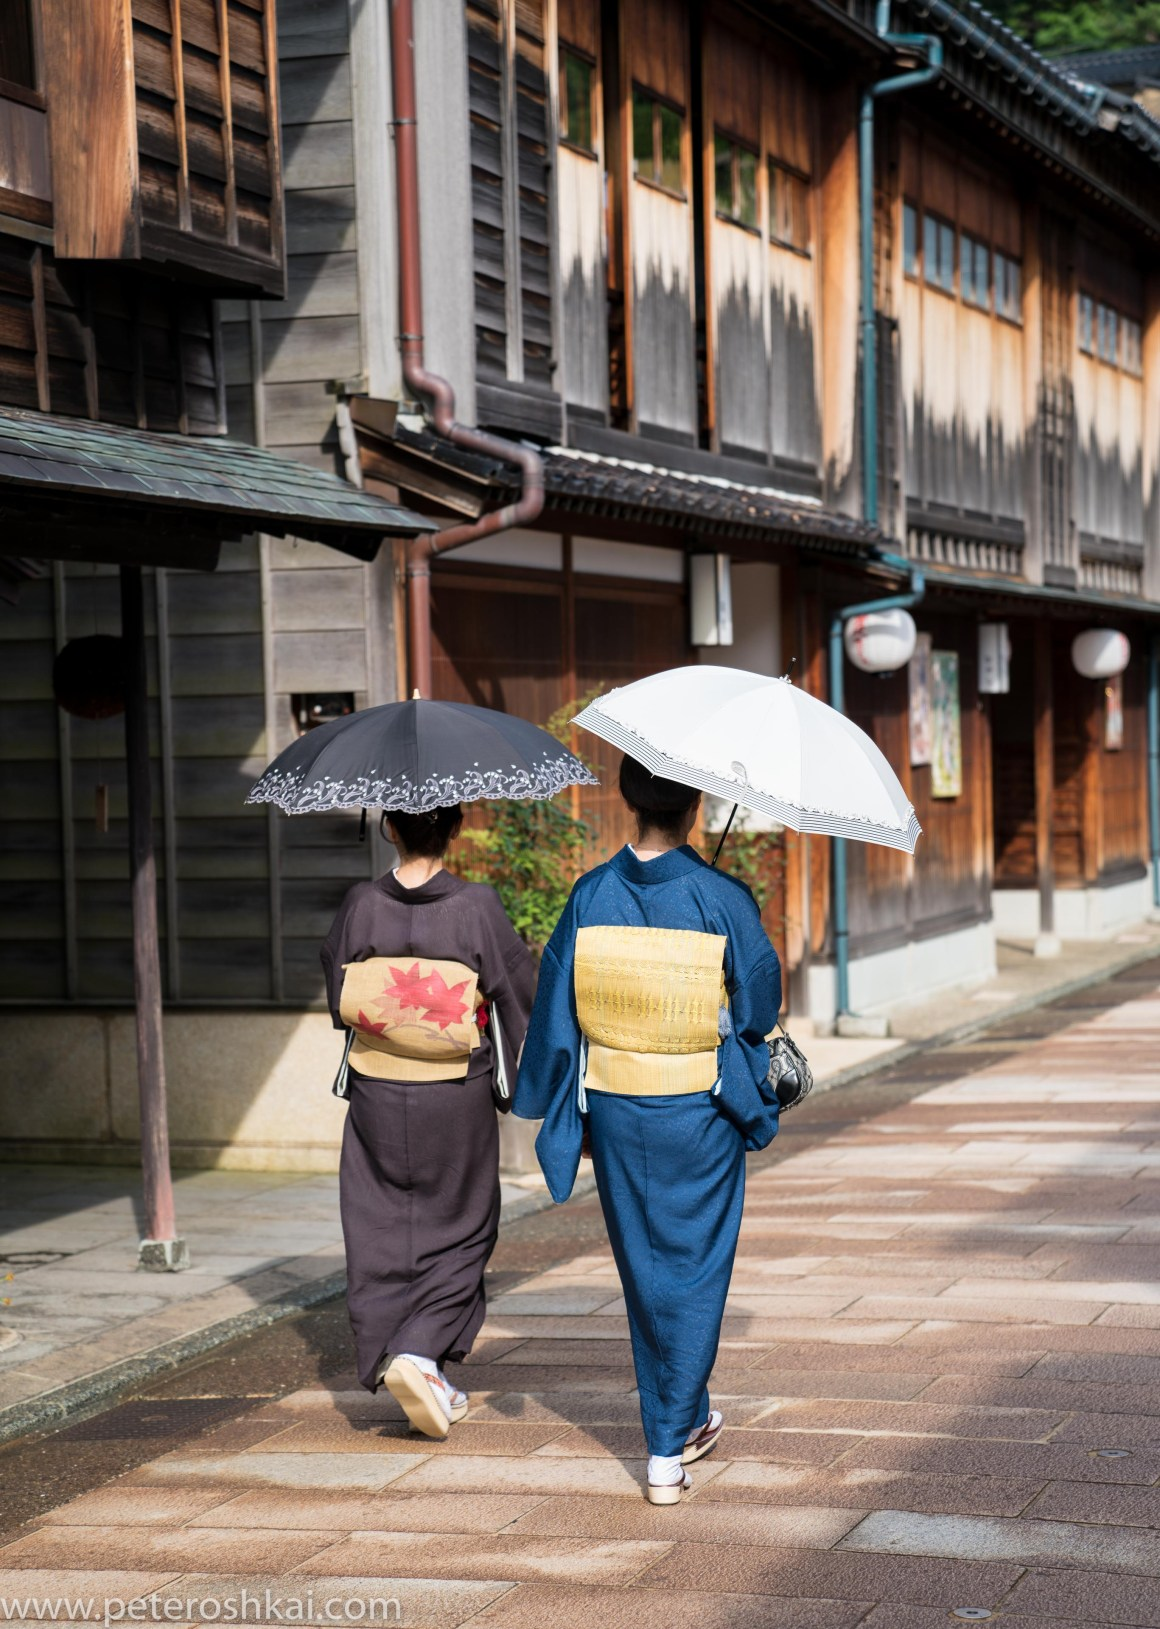 Women in traditional clothes in Hagashi Ochaya district in Kanazawa. Japan.